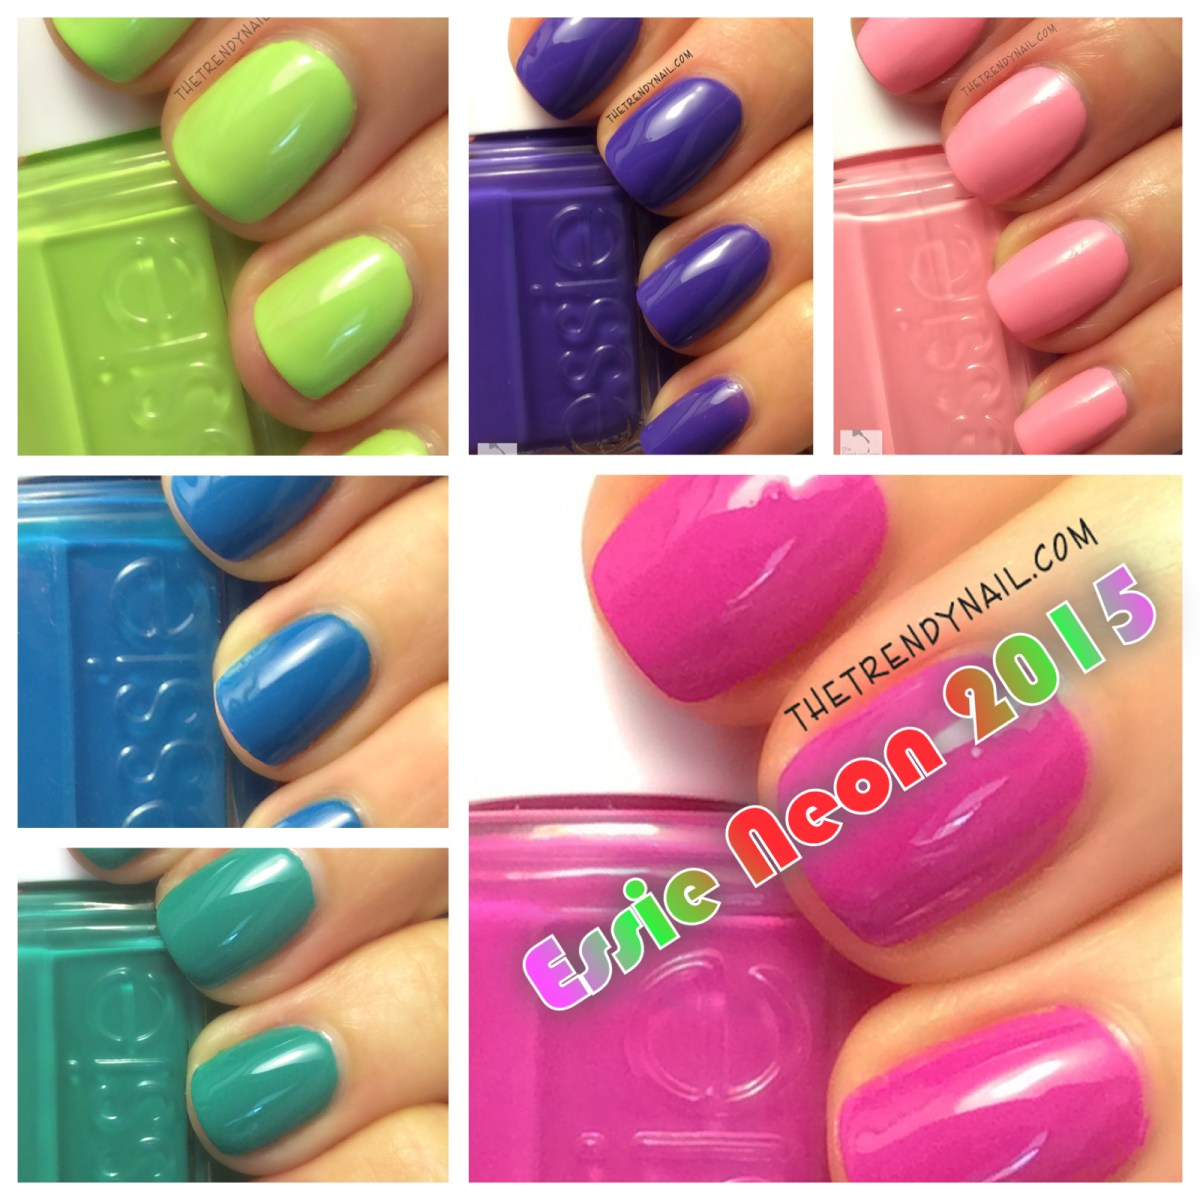 Essie Neon 2015 Swatches & Review